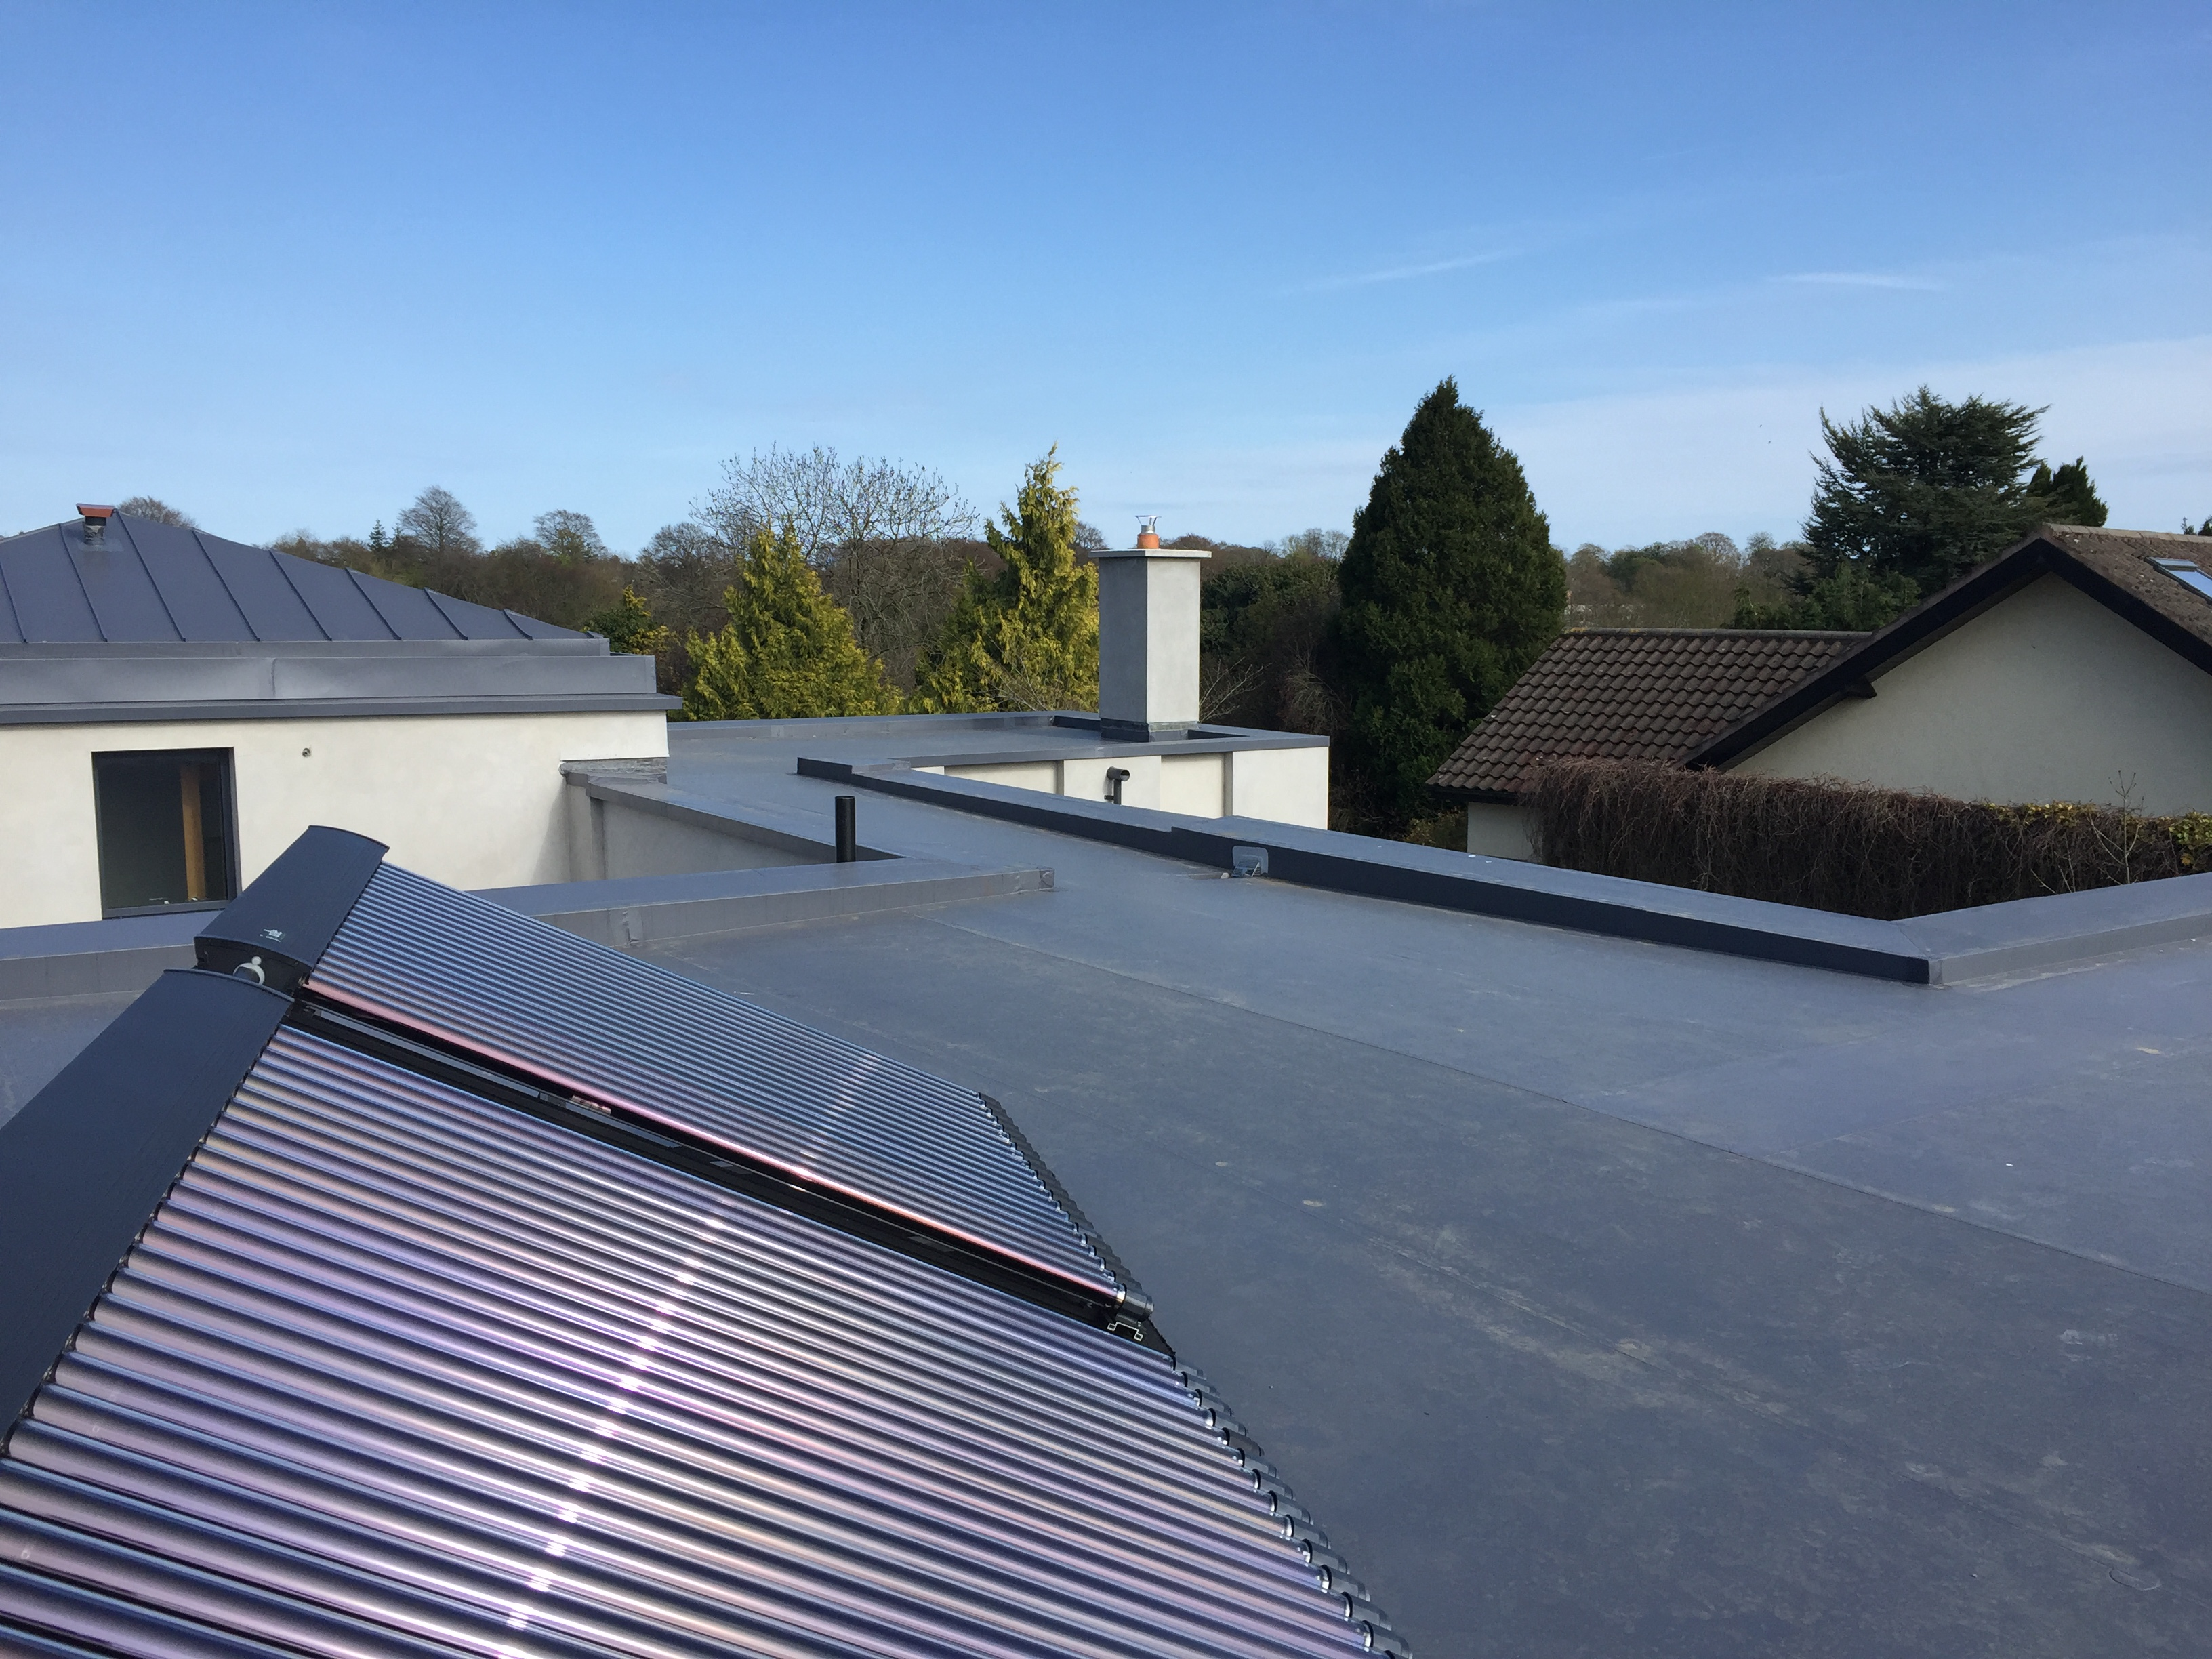 Kilcarn Navan Titan Roofing Cooney Architects  (16)